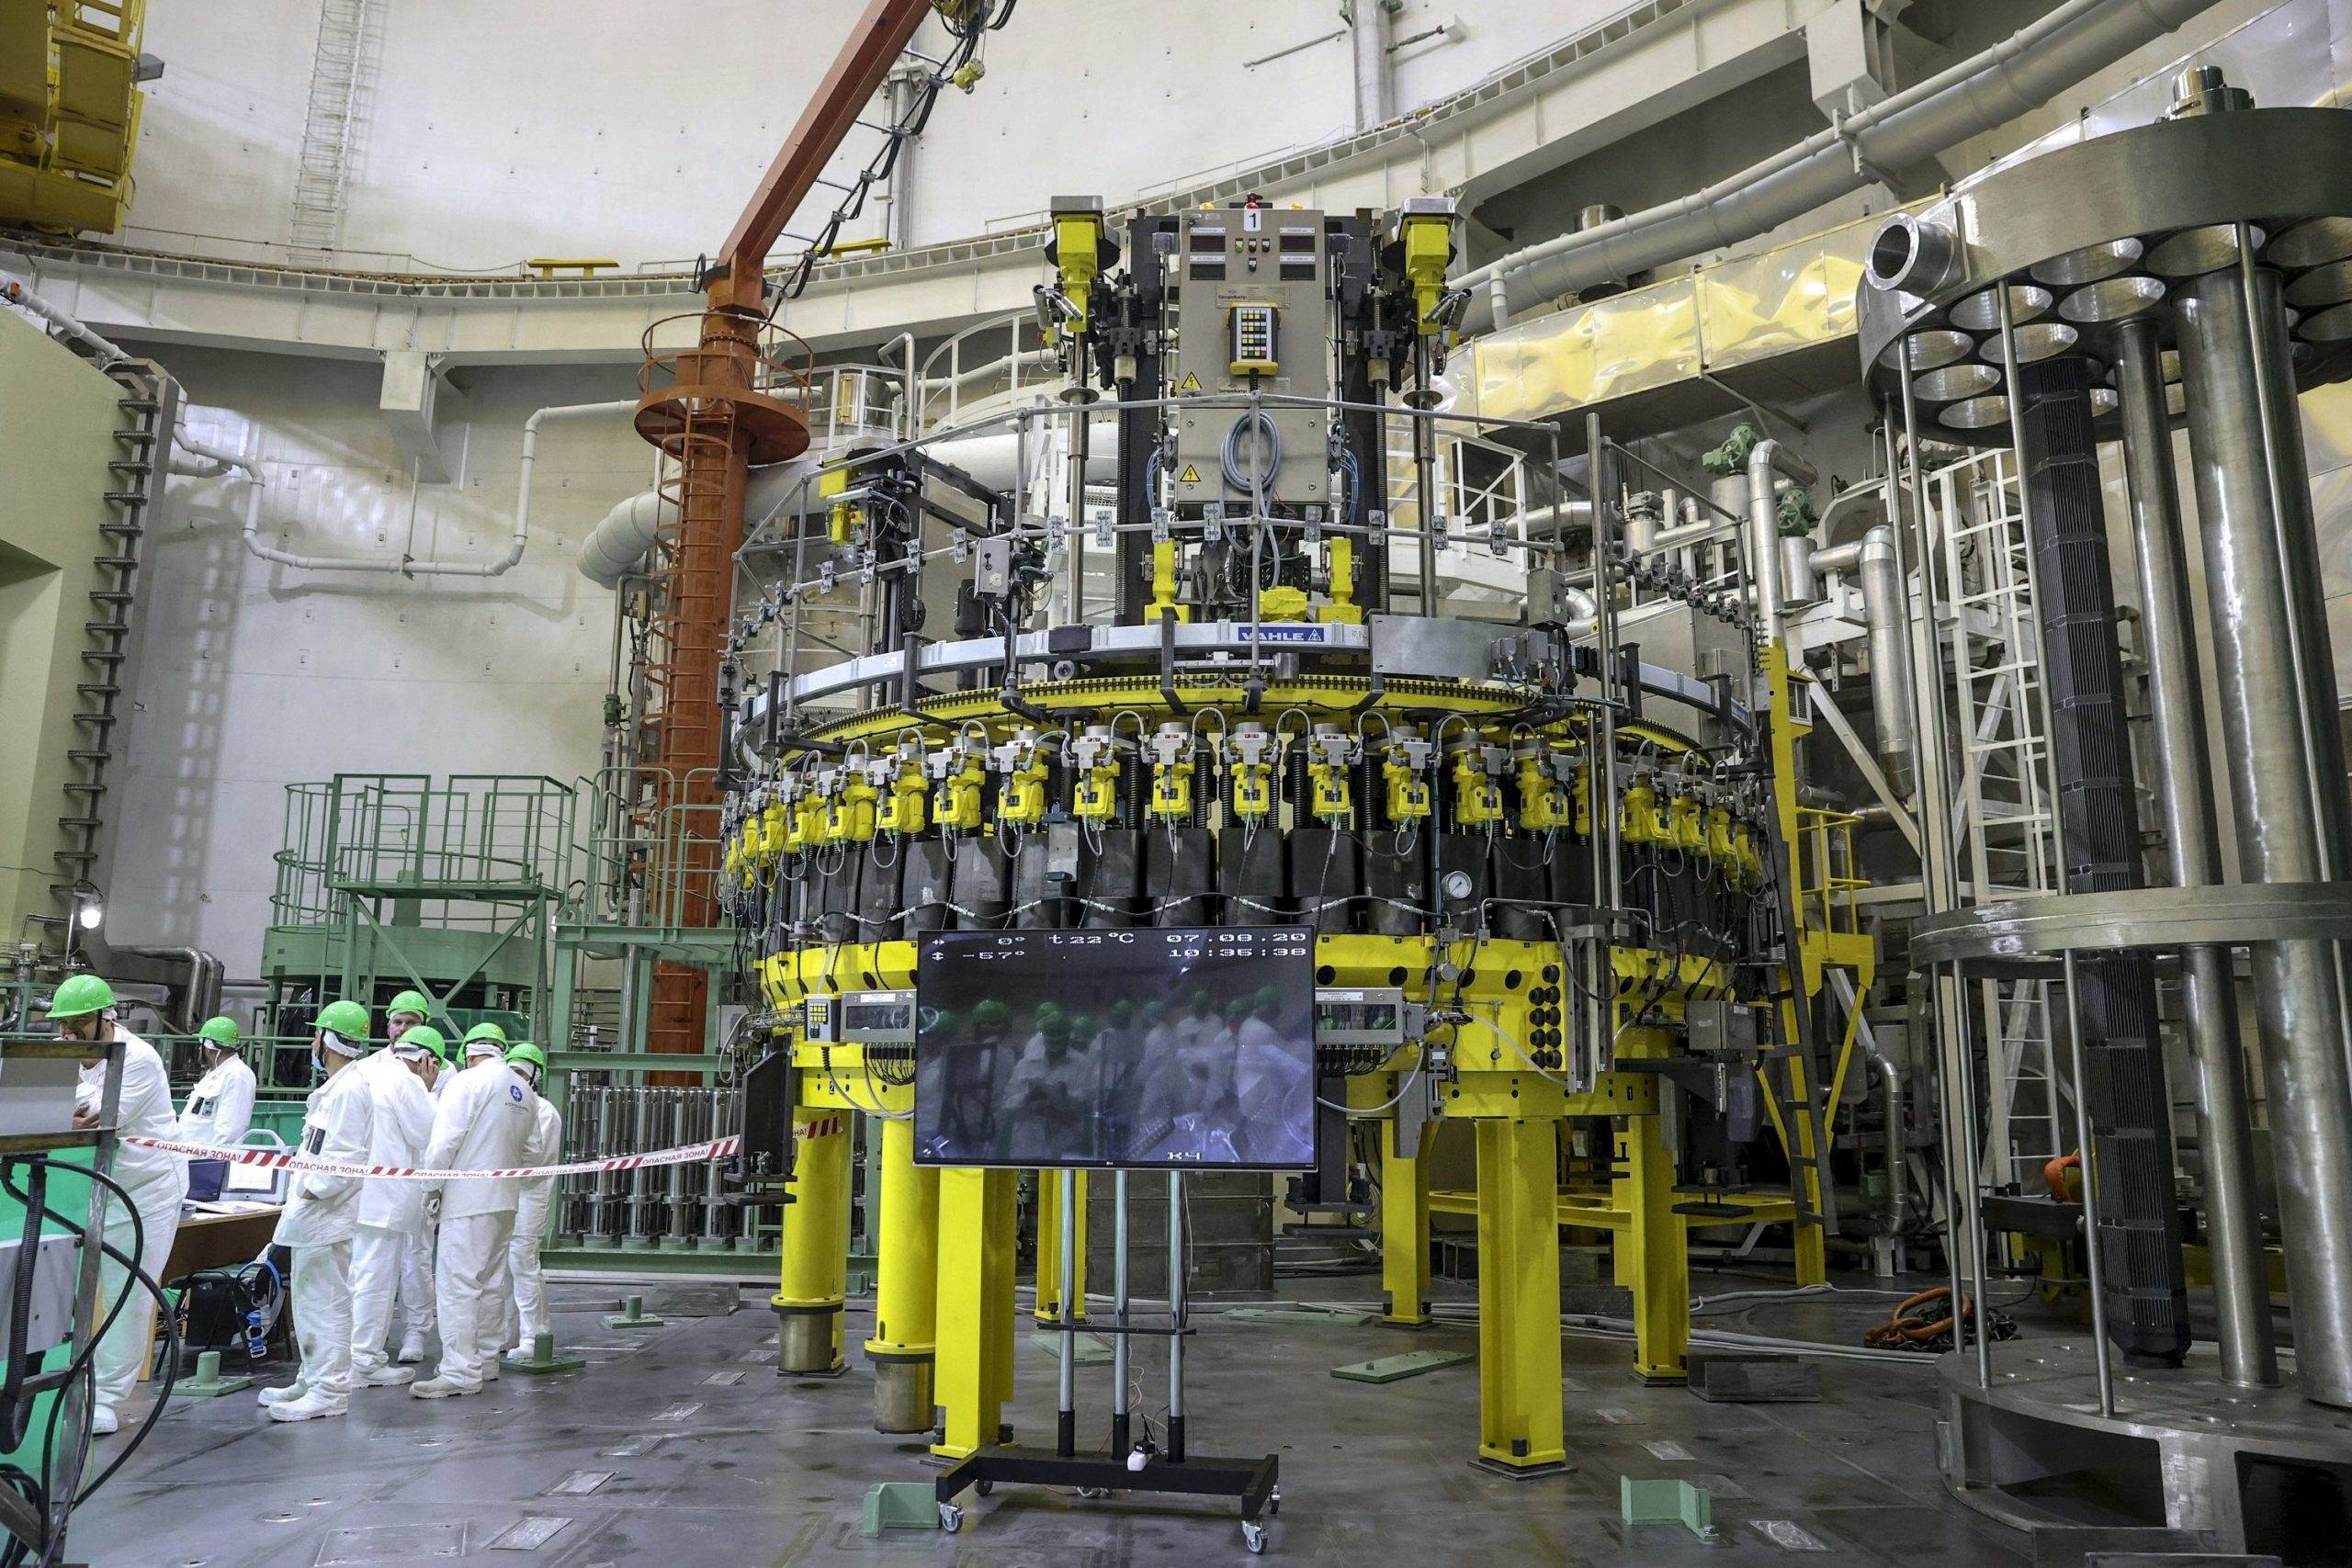 Belarus inaugurates its first nuclear plant;  Lithuania is afraid